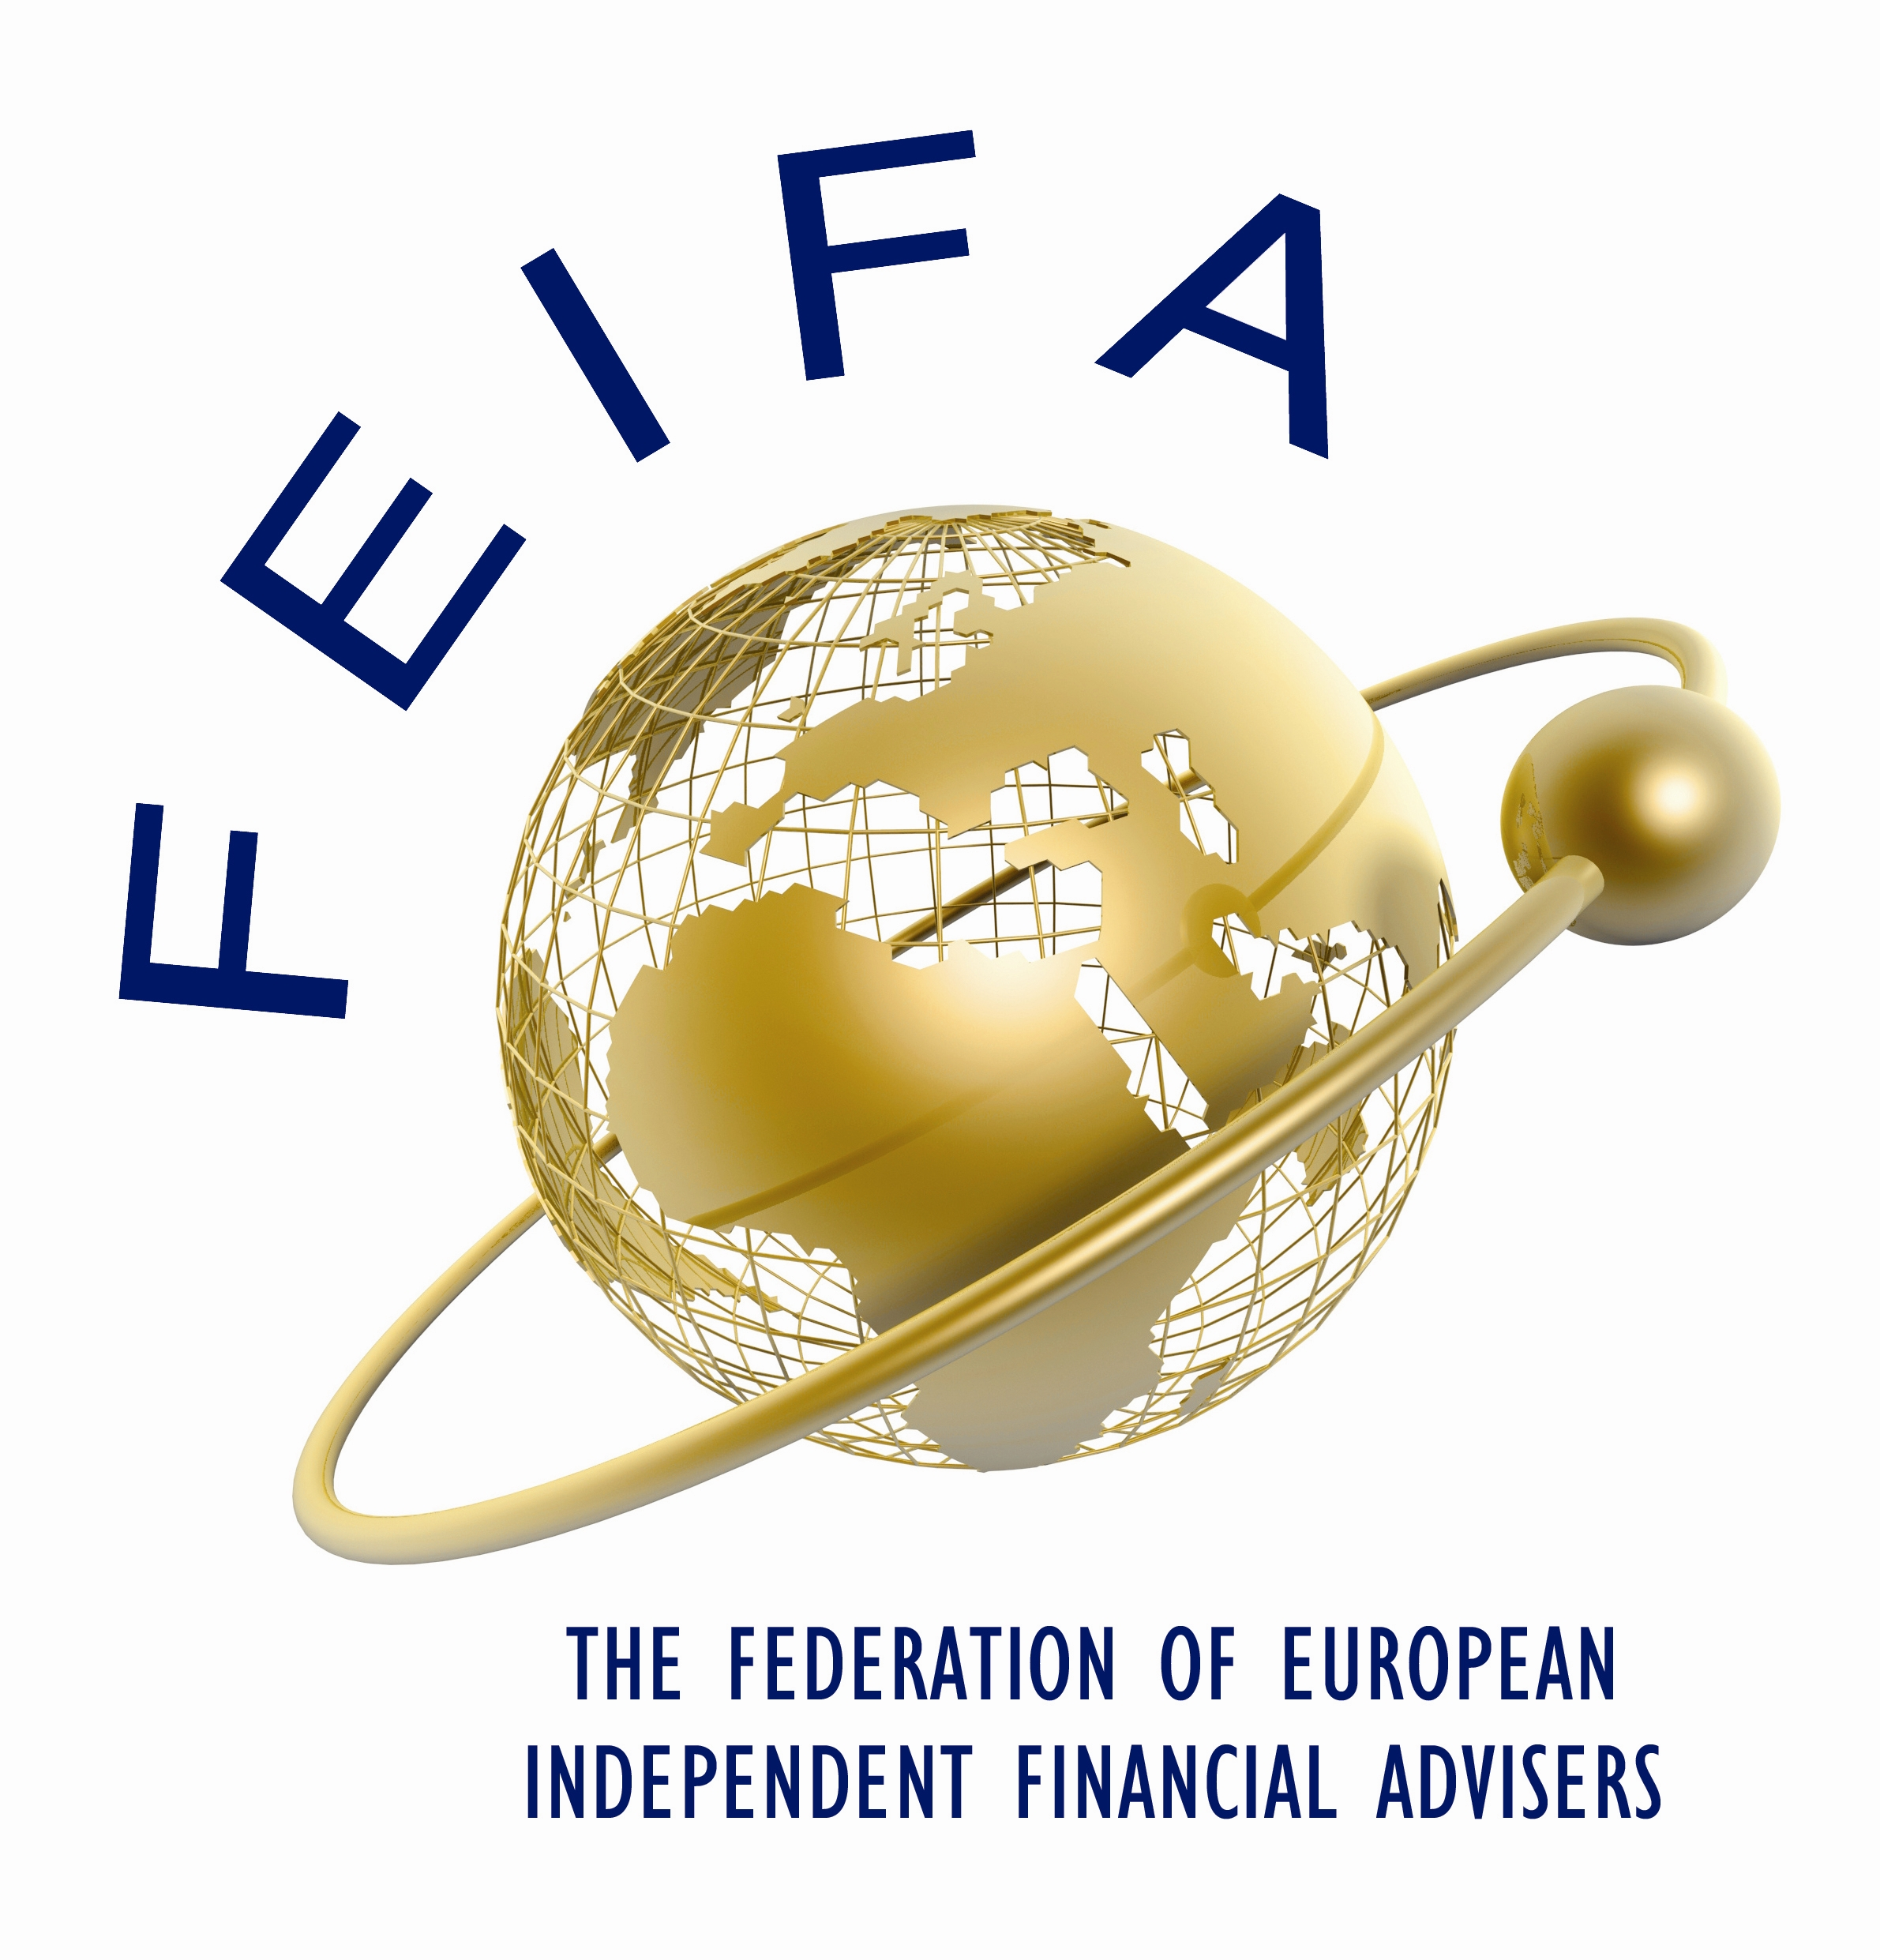 Federation of European Independent Financial Advisers